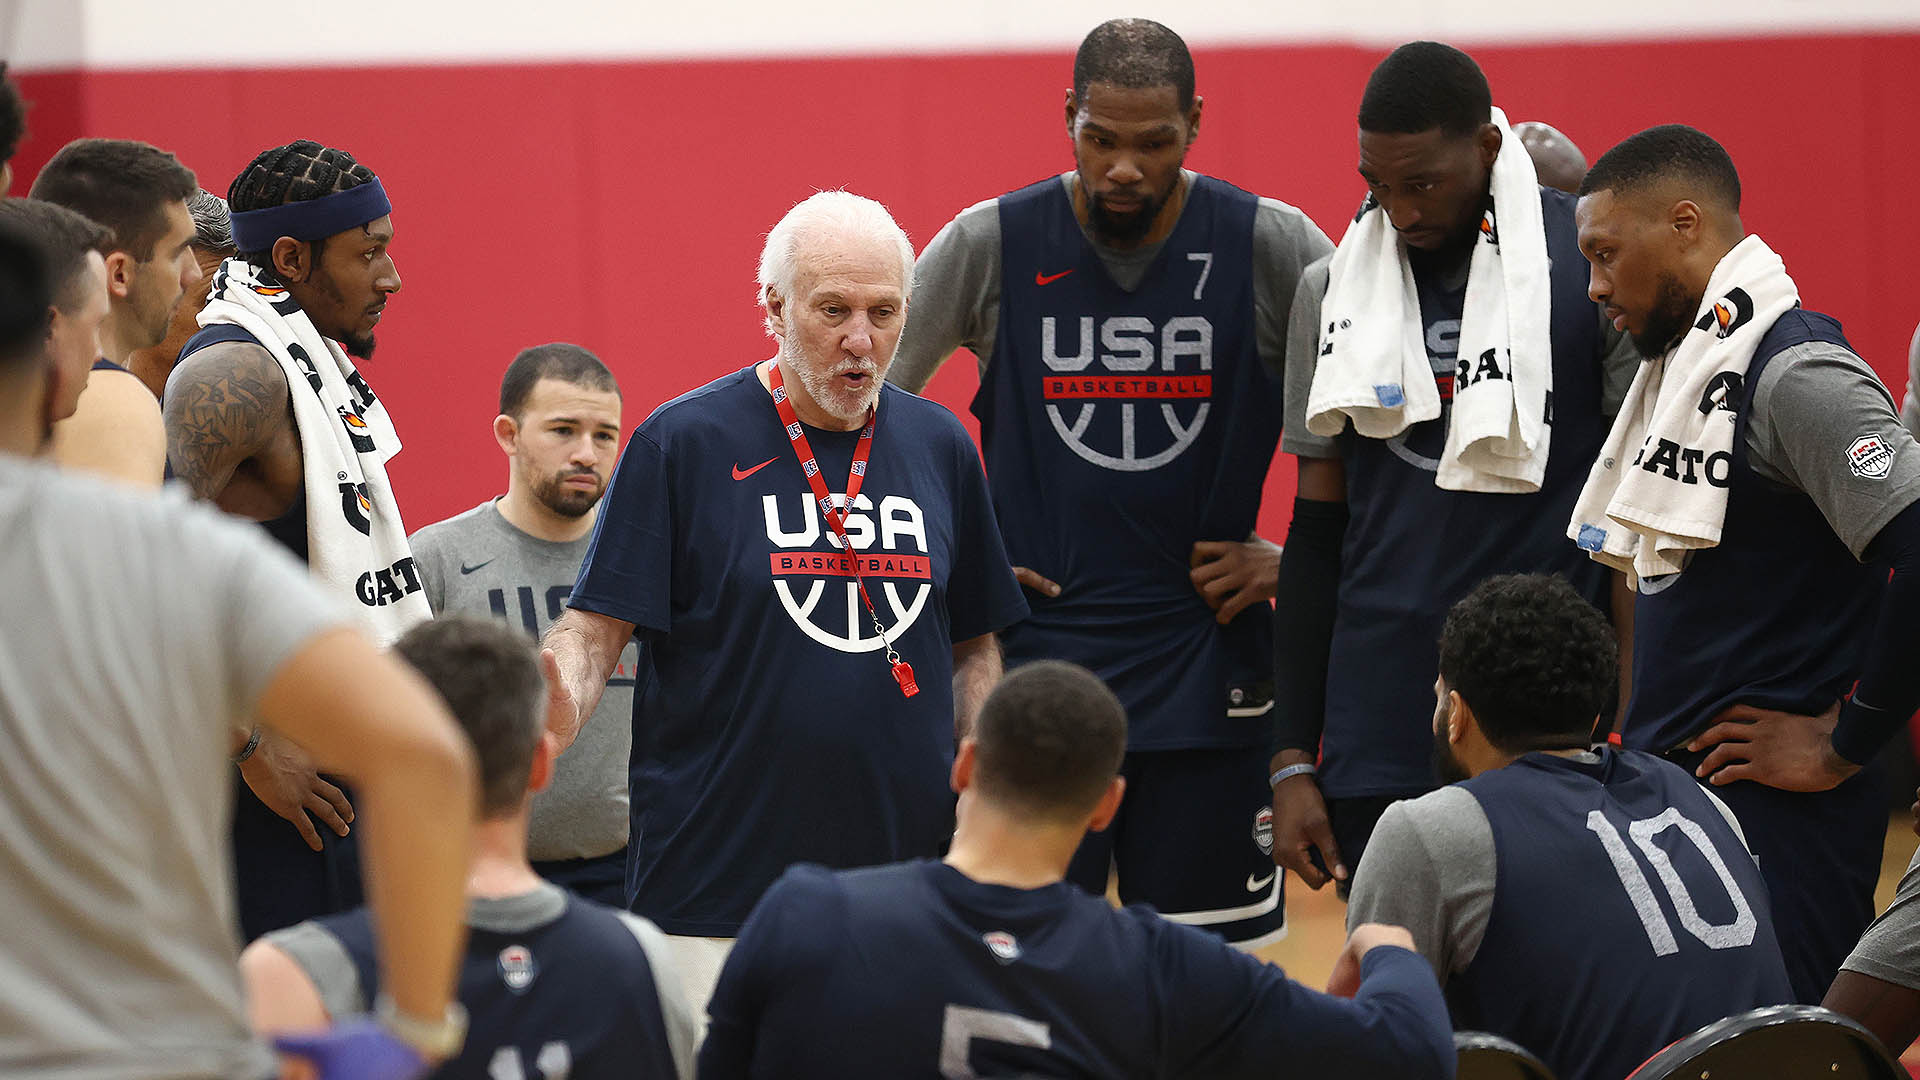 USA Basketball: Full schedule for Tokyo Olympics & exhibitions